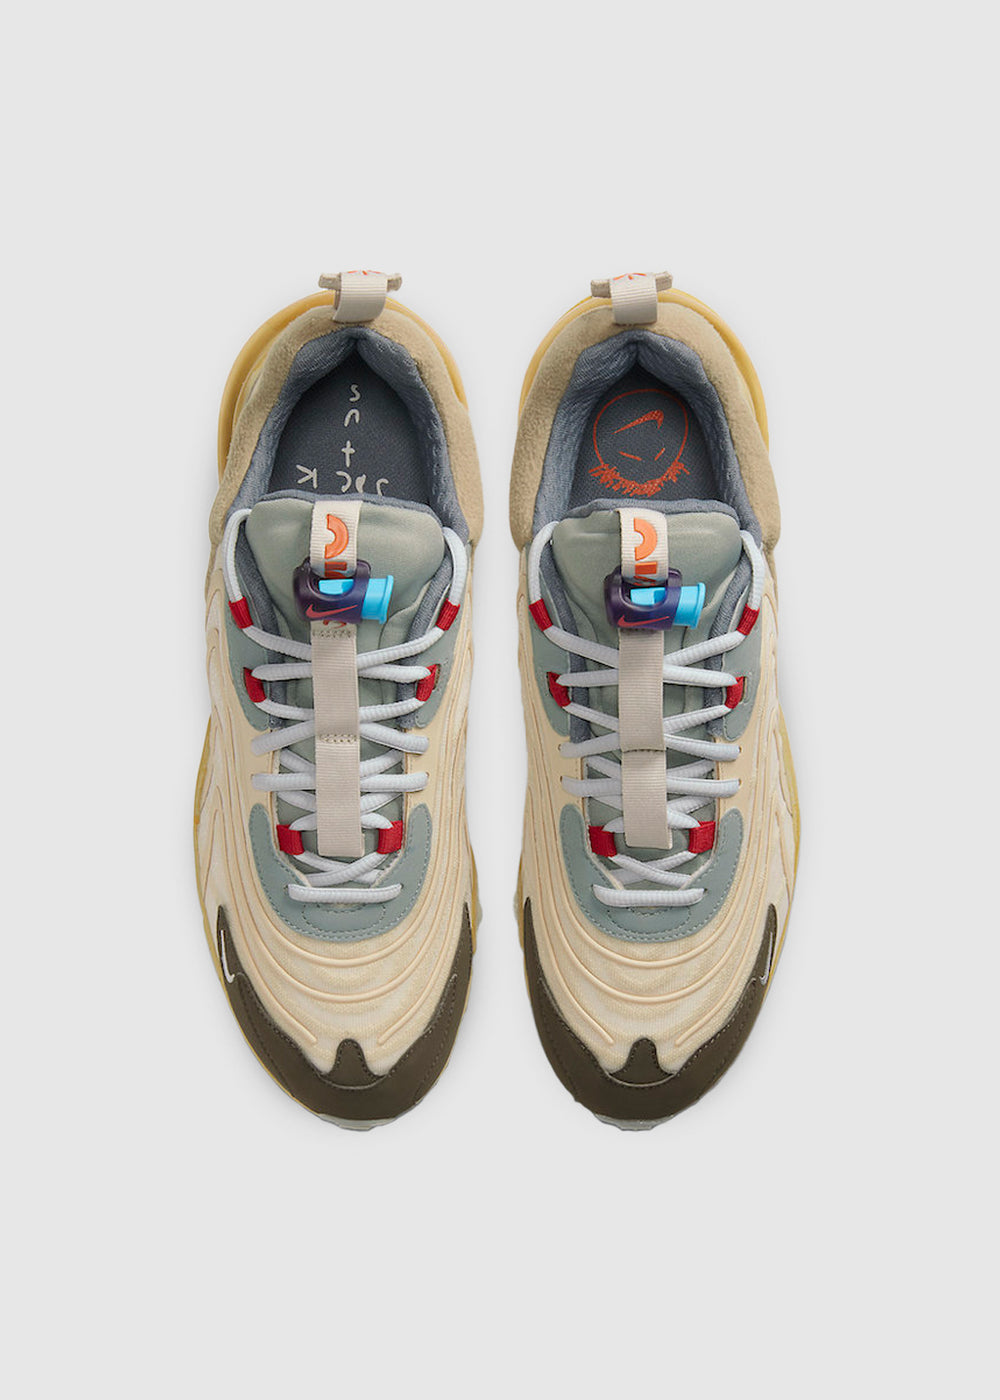 nike-x-travis-scott-air-max-270-cactus-trails-cream-3